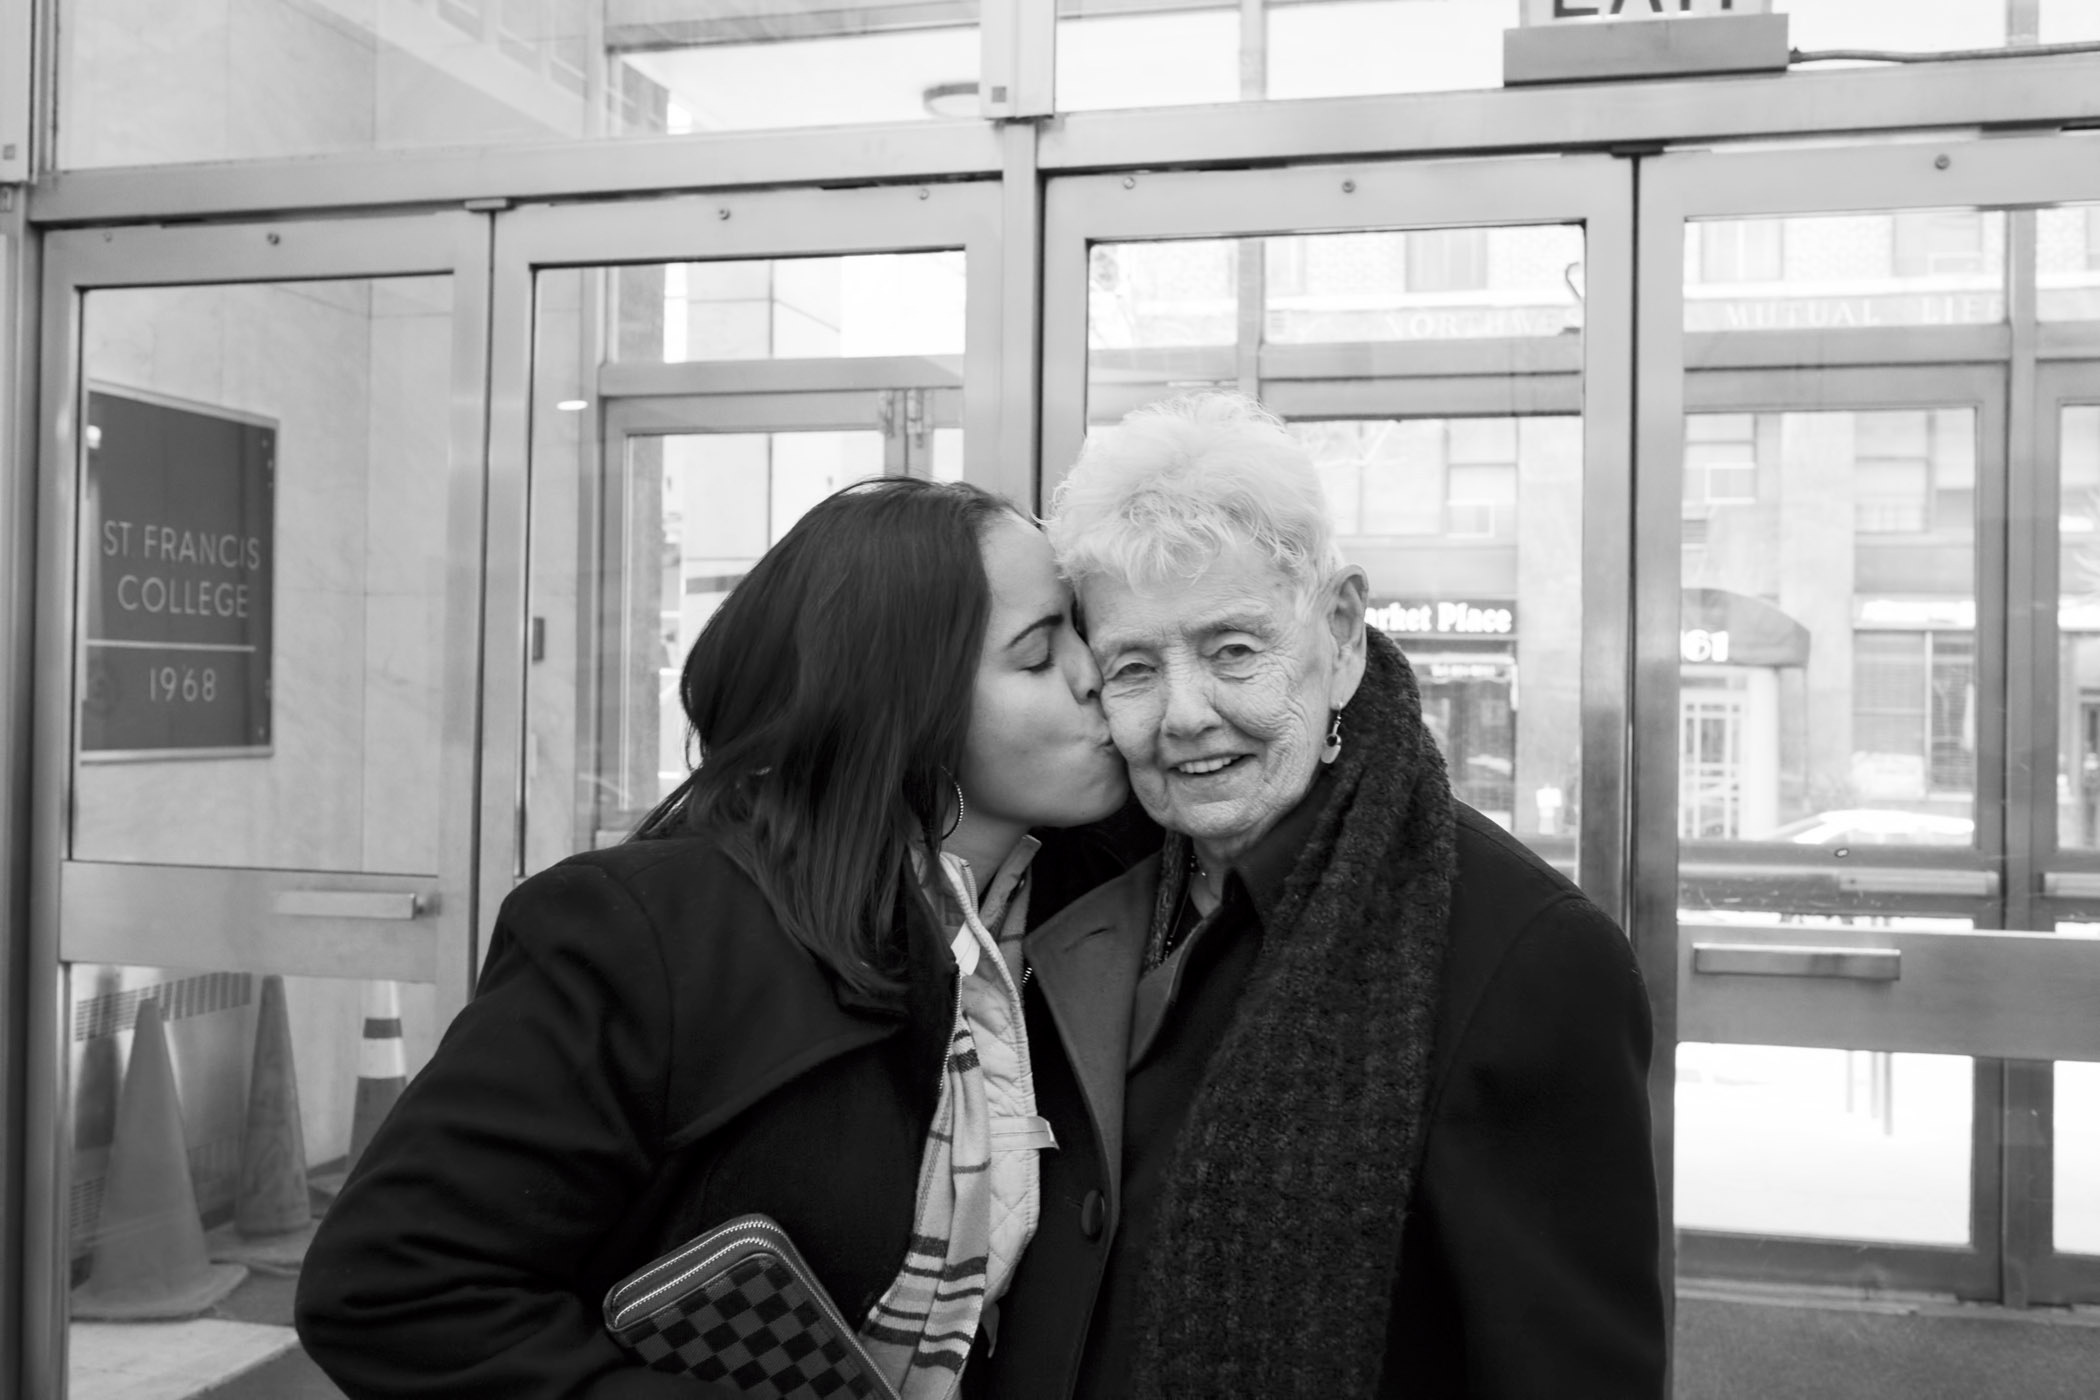 Evelyn with Sister Elaine Roulet, a nun who worked in Bedford Hills Correctional Facility. Brooklyn, NY (2015)